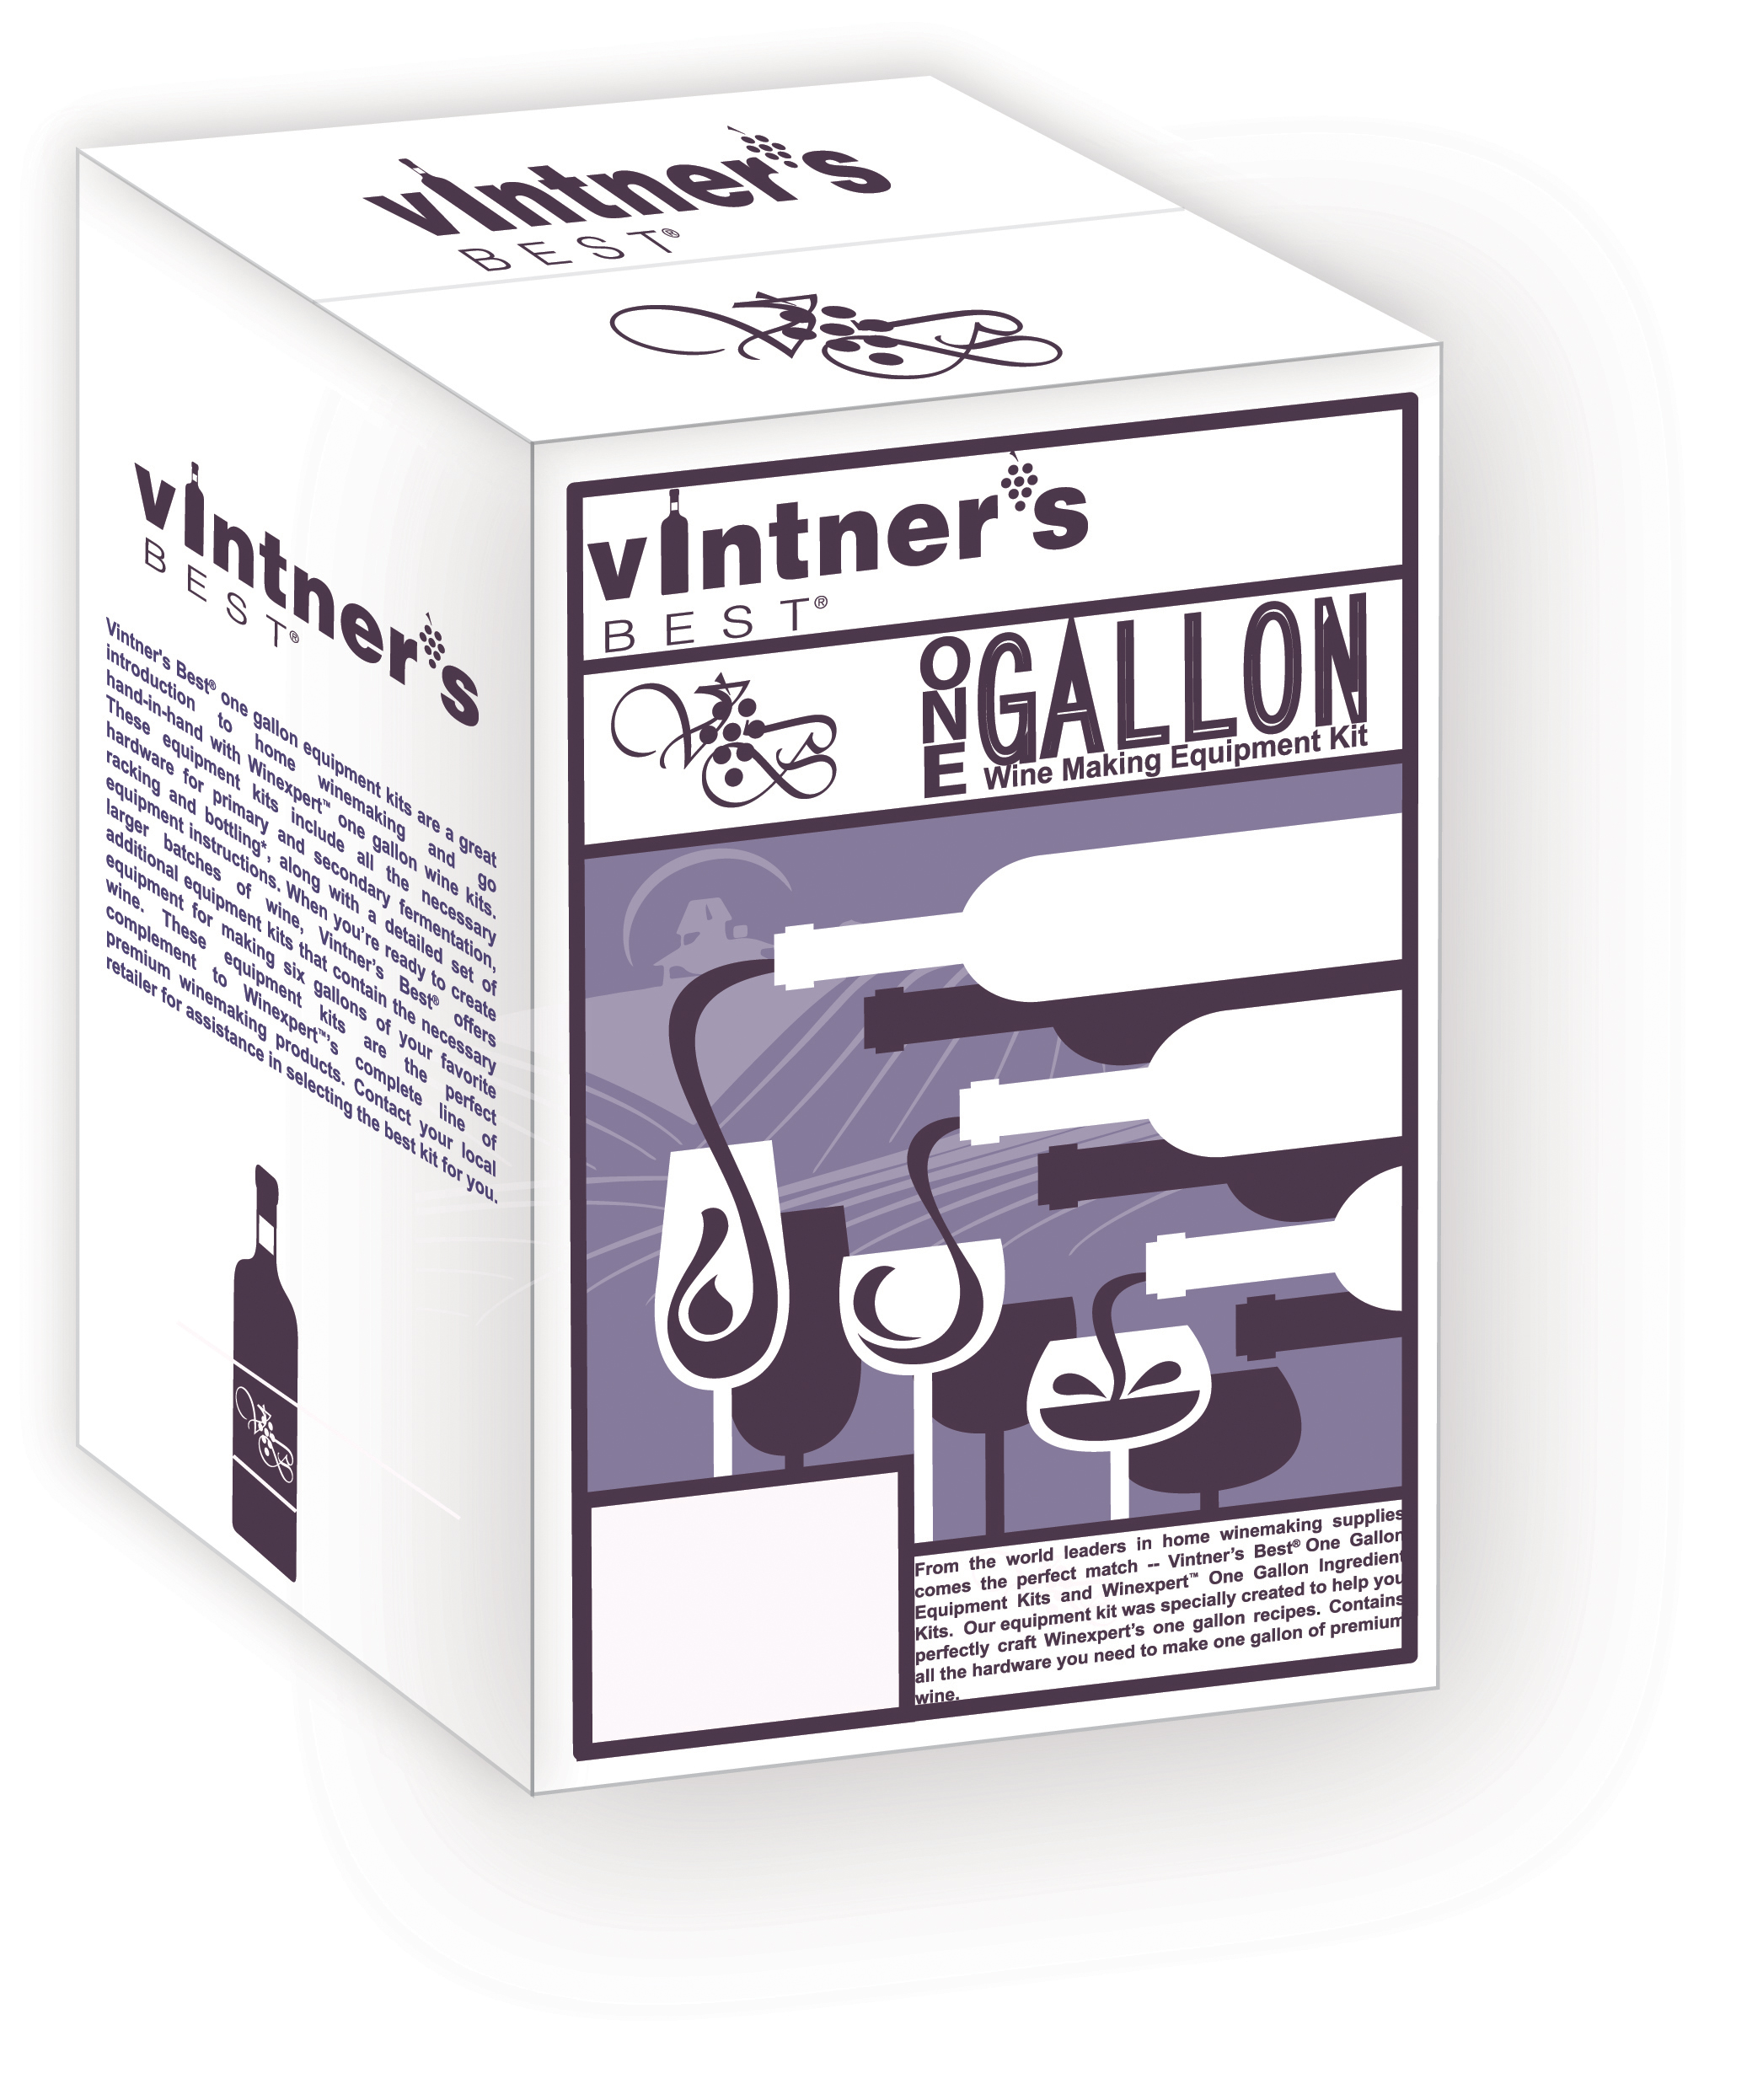 Vintners Best One:Gallon Equipment Kit (1)